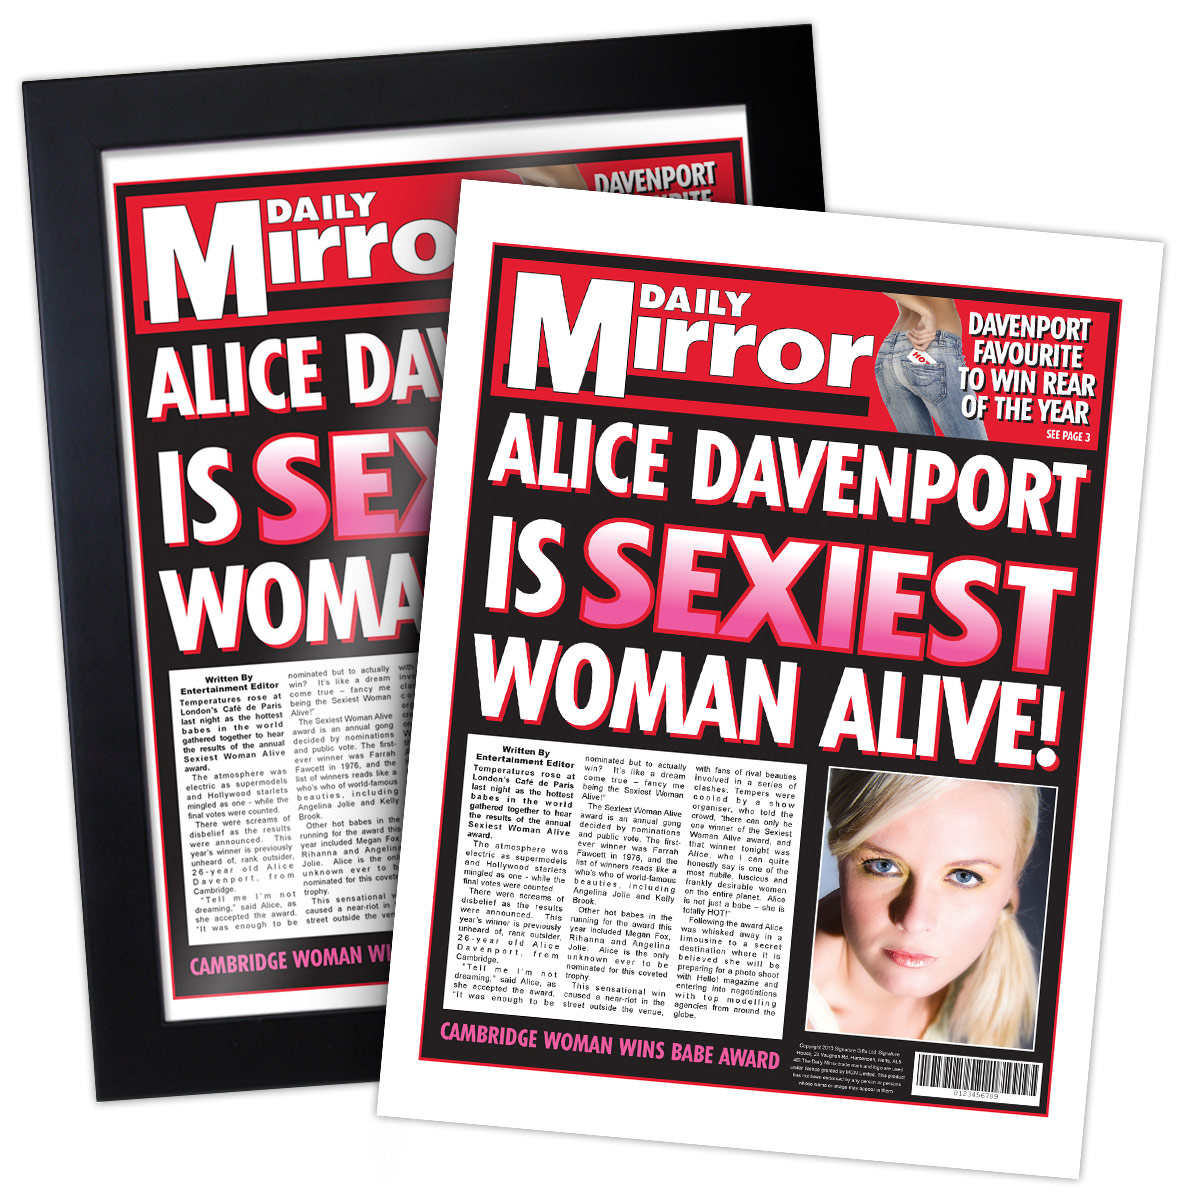 Sexiest Woman Alive Spoof Newspaper - 21st gift